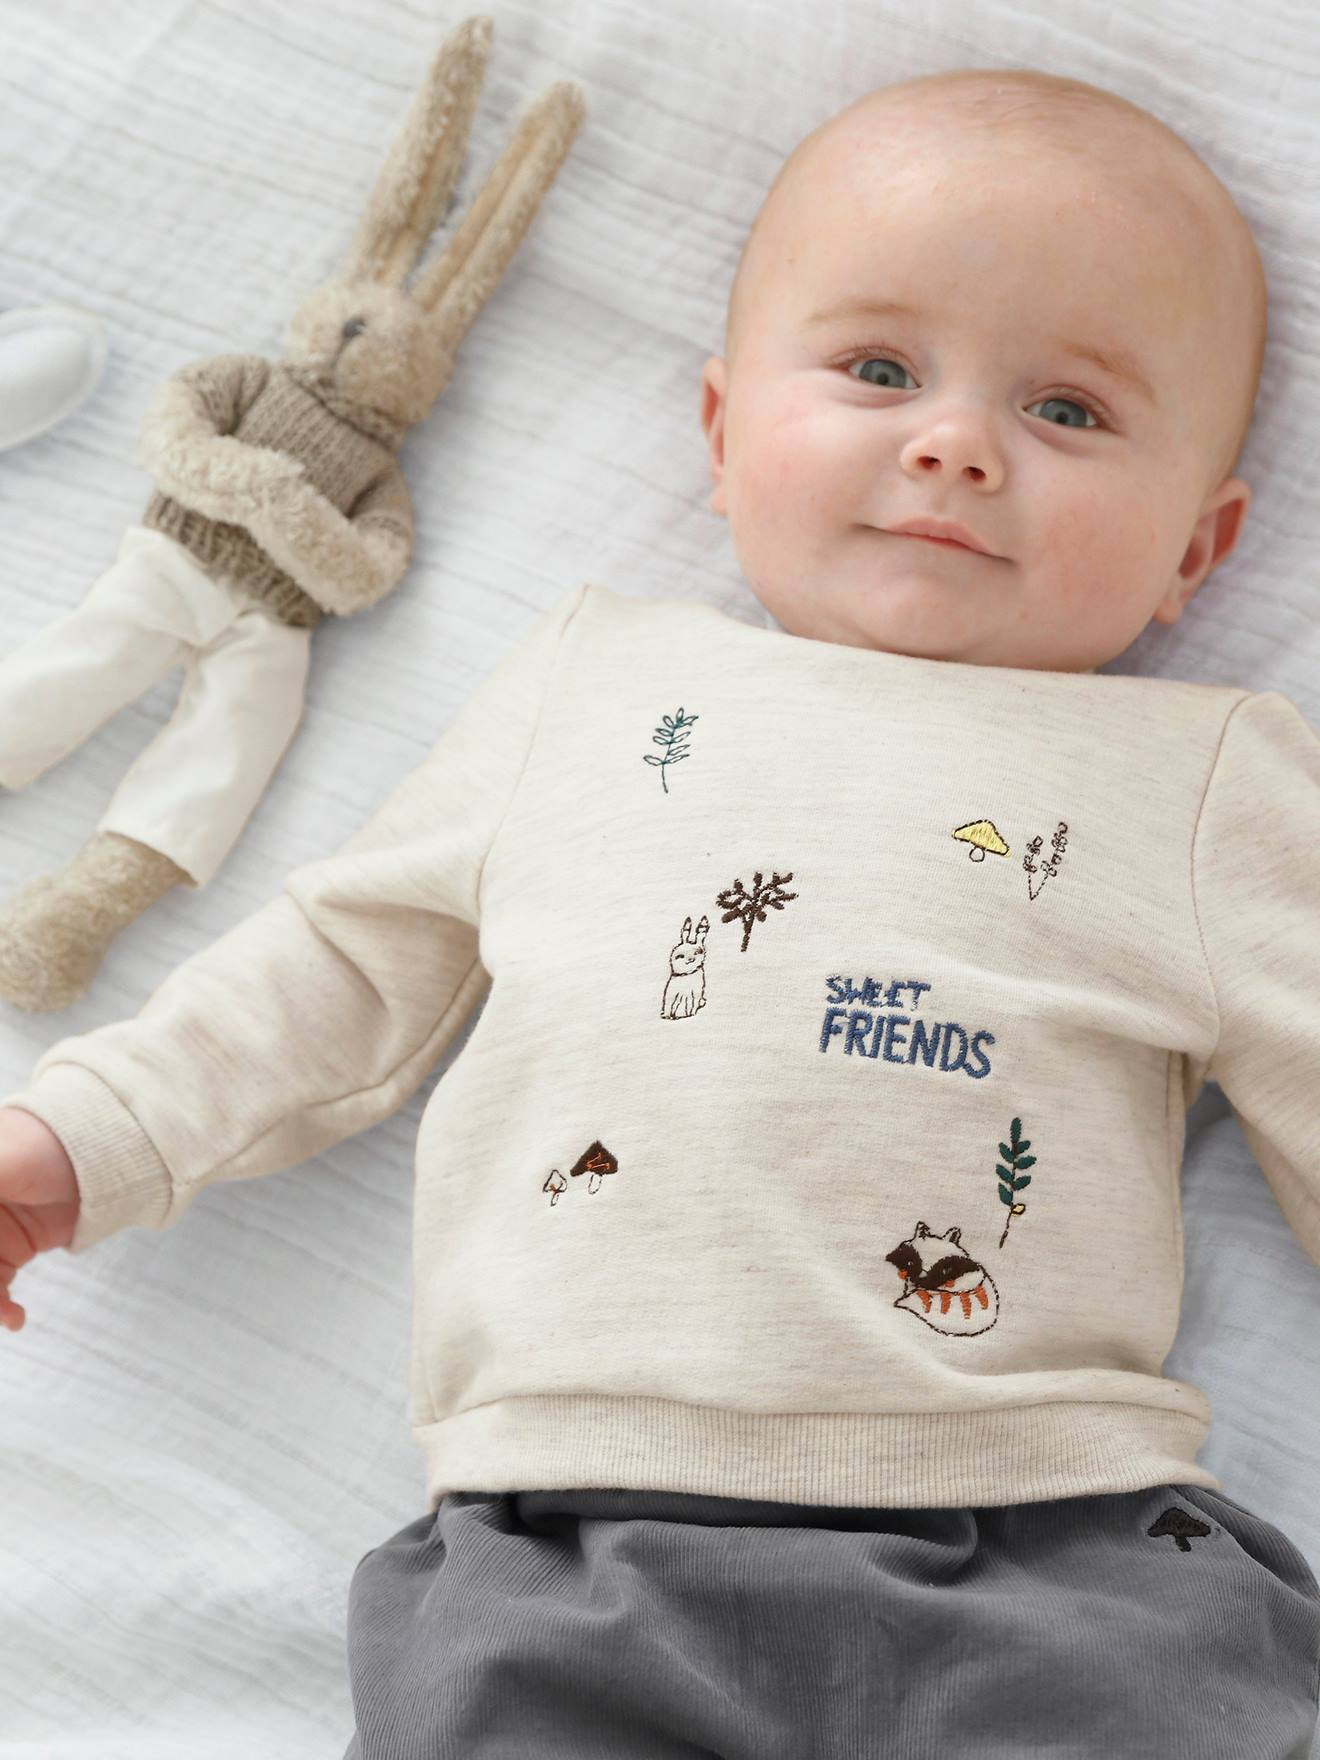 80cb01039 Outfit for Newborn Babies  Sweatshirt with Fox Embroidery